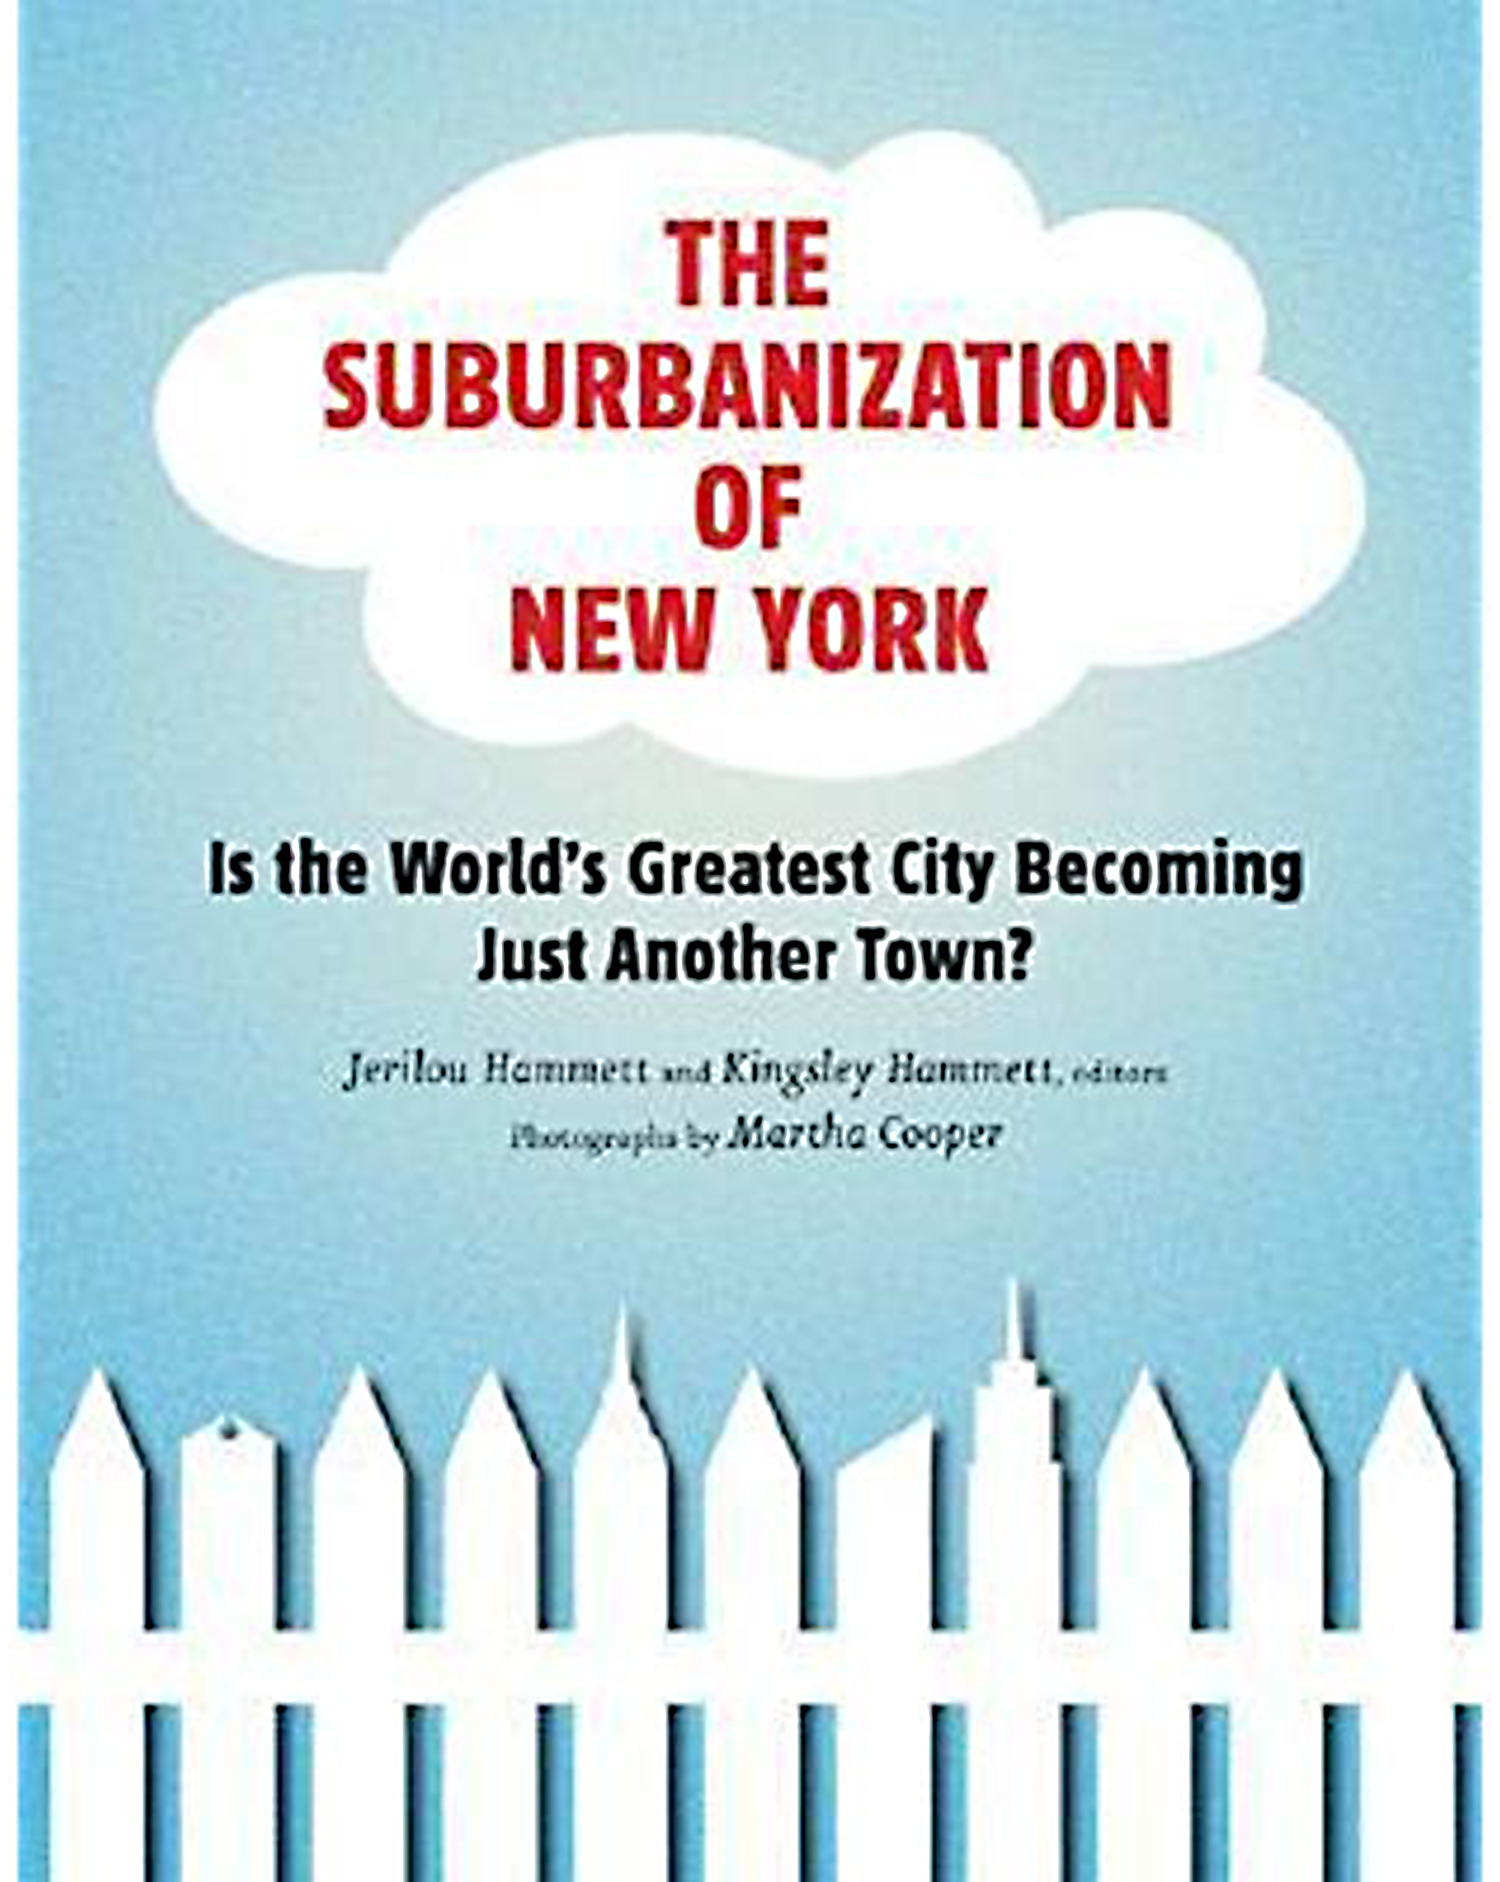 The Suburbanization of New York- Is the World's Greatest City Becoming Just Another Town_.jpg